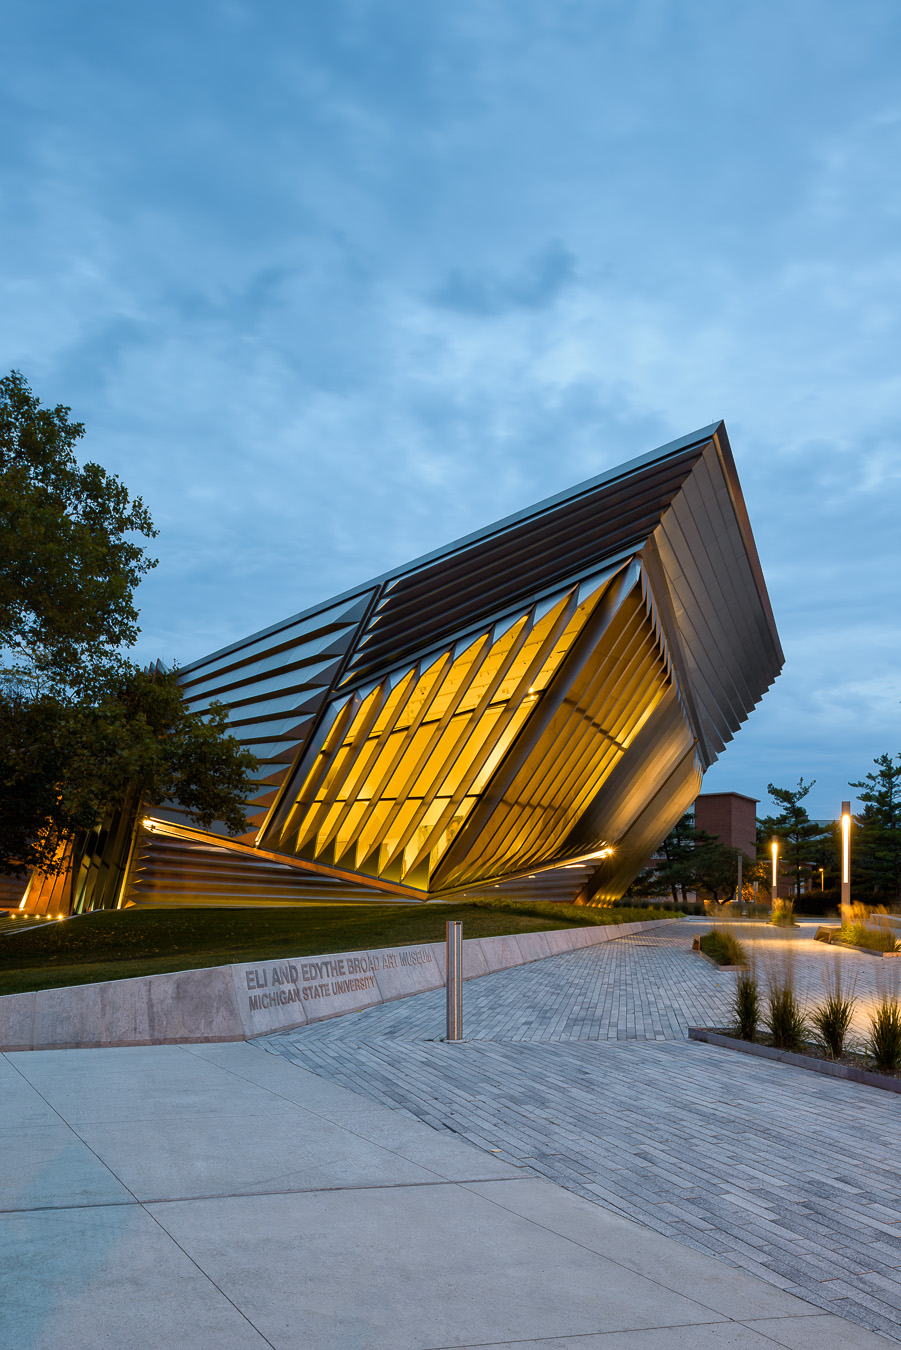 99-Zaha Hadid Broad Museum Lansing Doublespace Toronto Architectural Photography.jpg